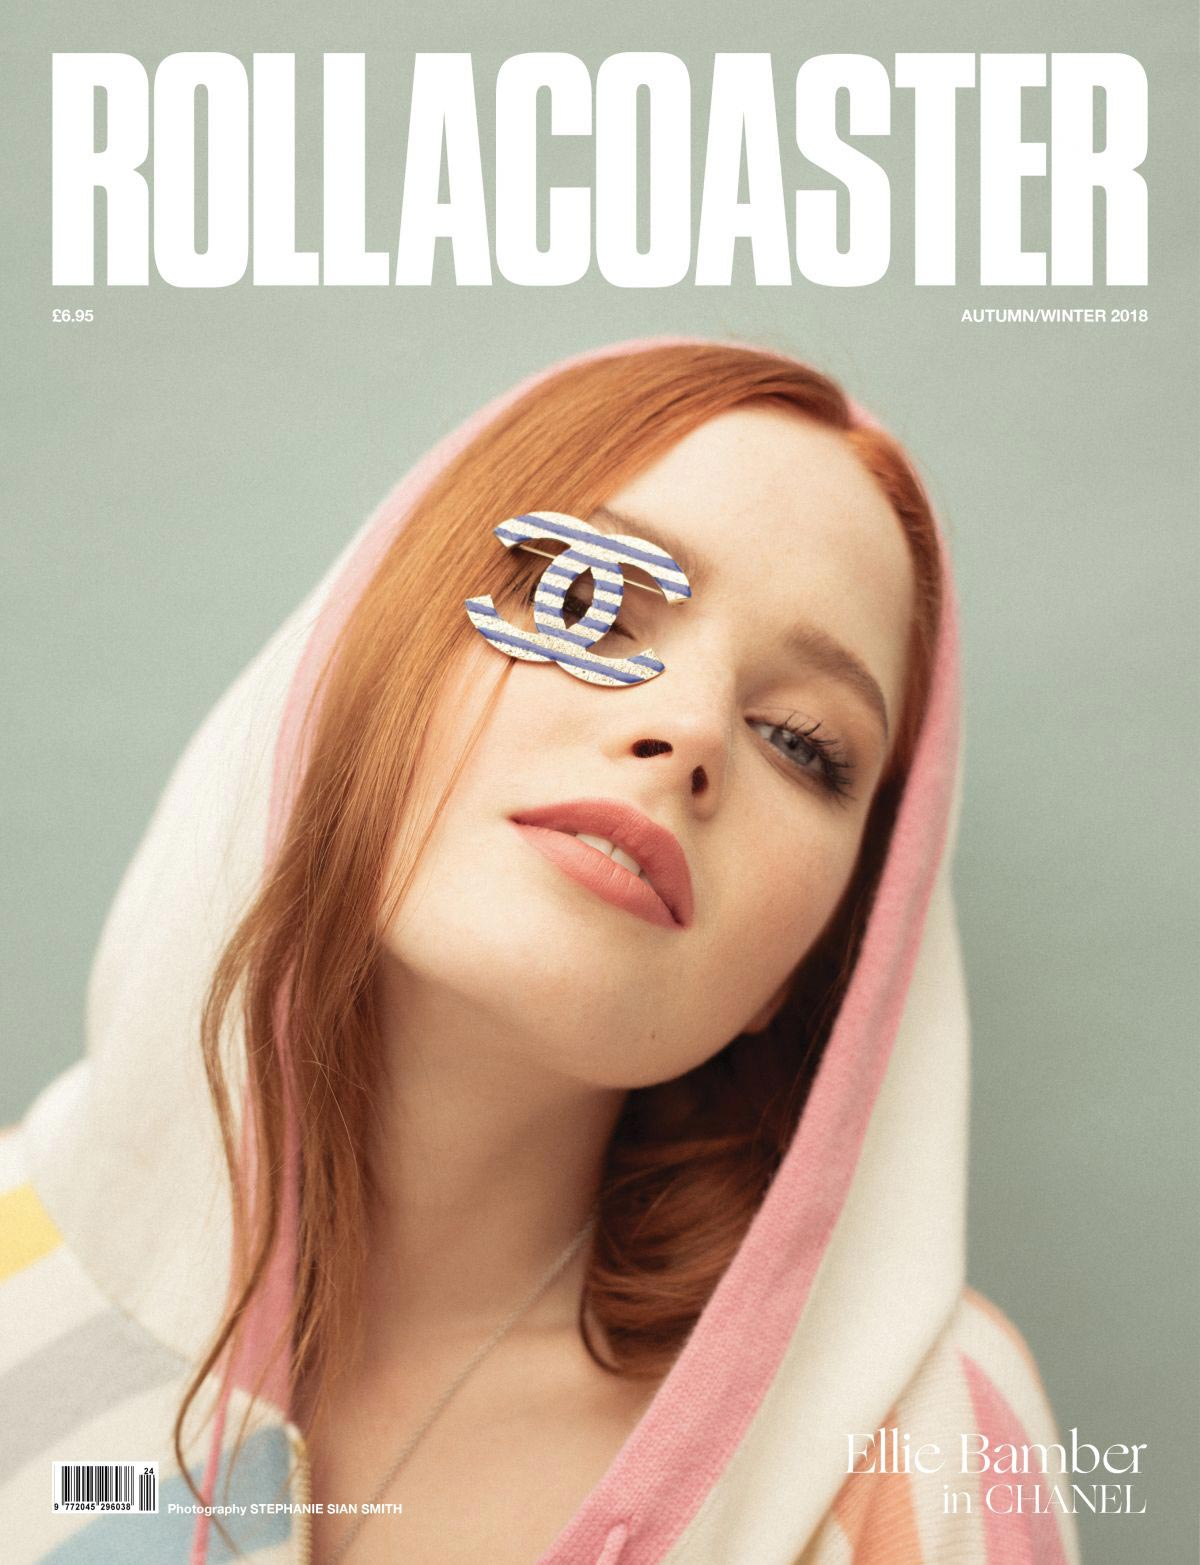 Ellie Bamber on The Cover of Roller Coaster Autumn Winter 2018 1